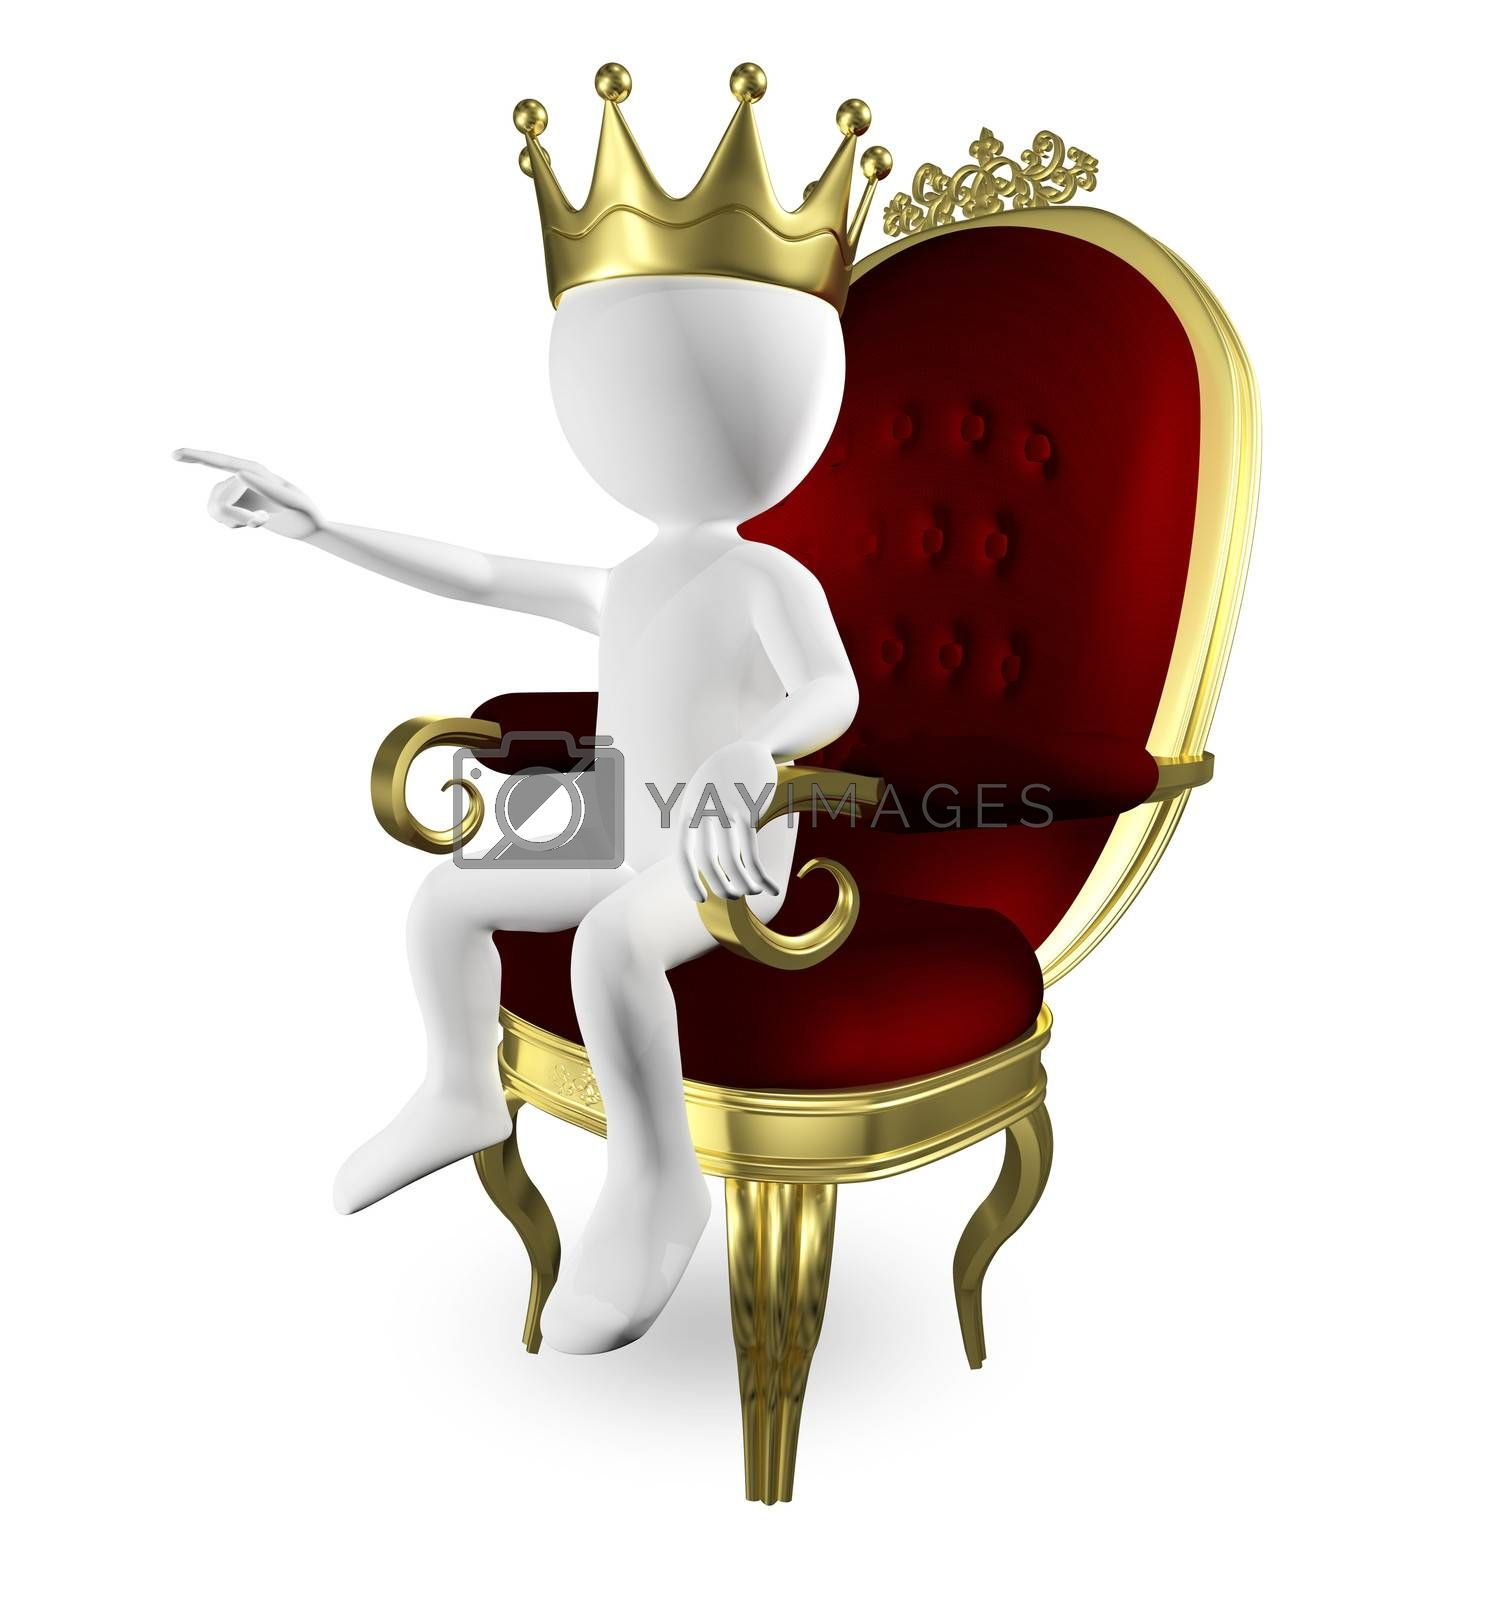 3d abstract illustration of a man on the throne